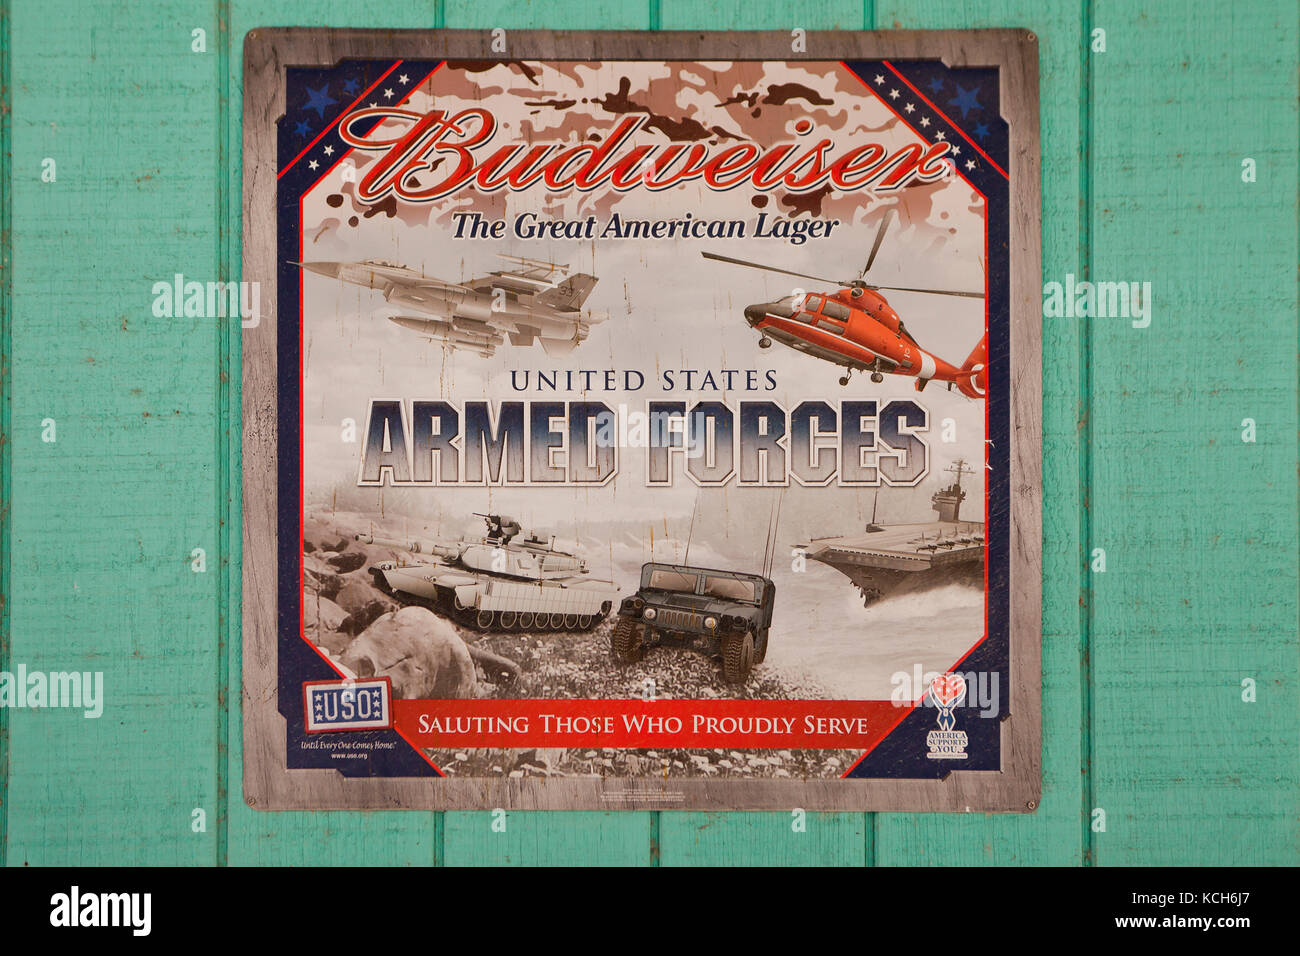 Budweiser US Armed Forces ad poster - USA - Stock Image